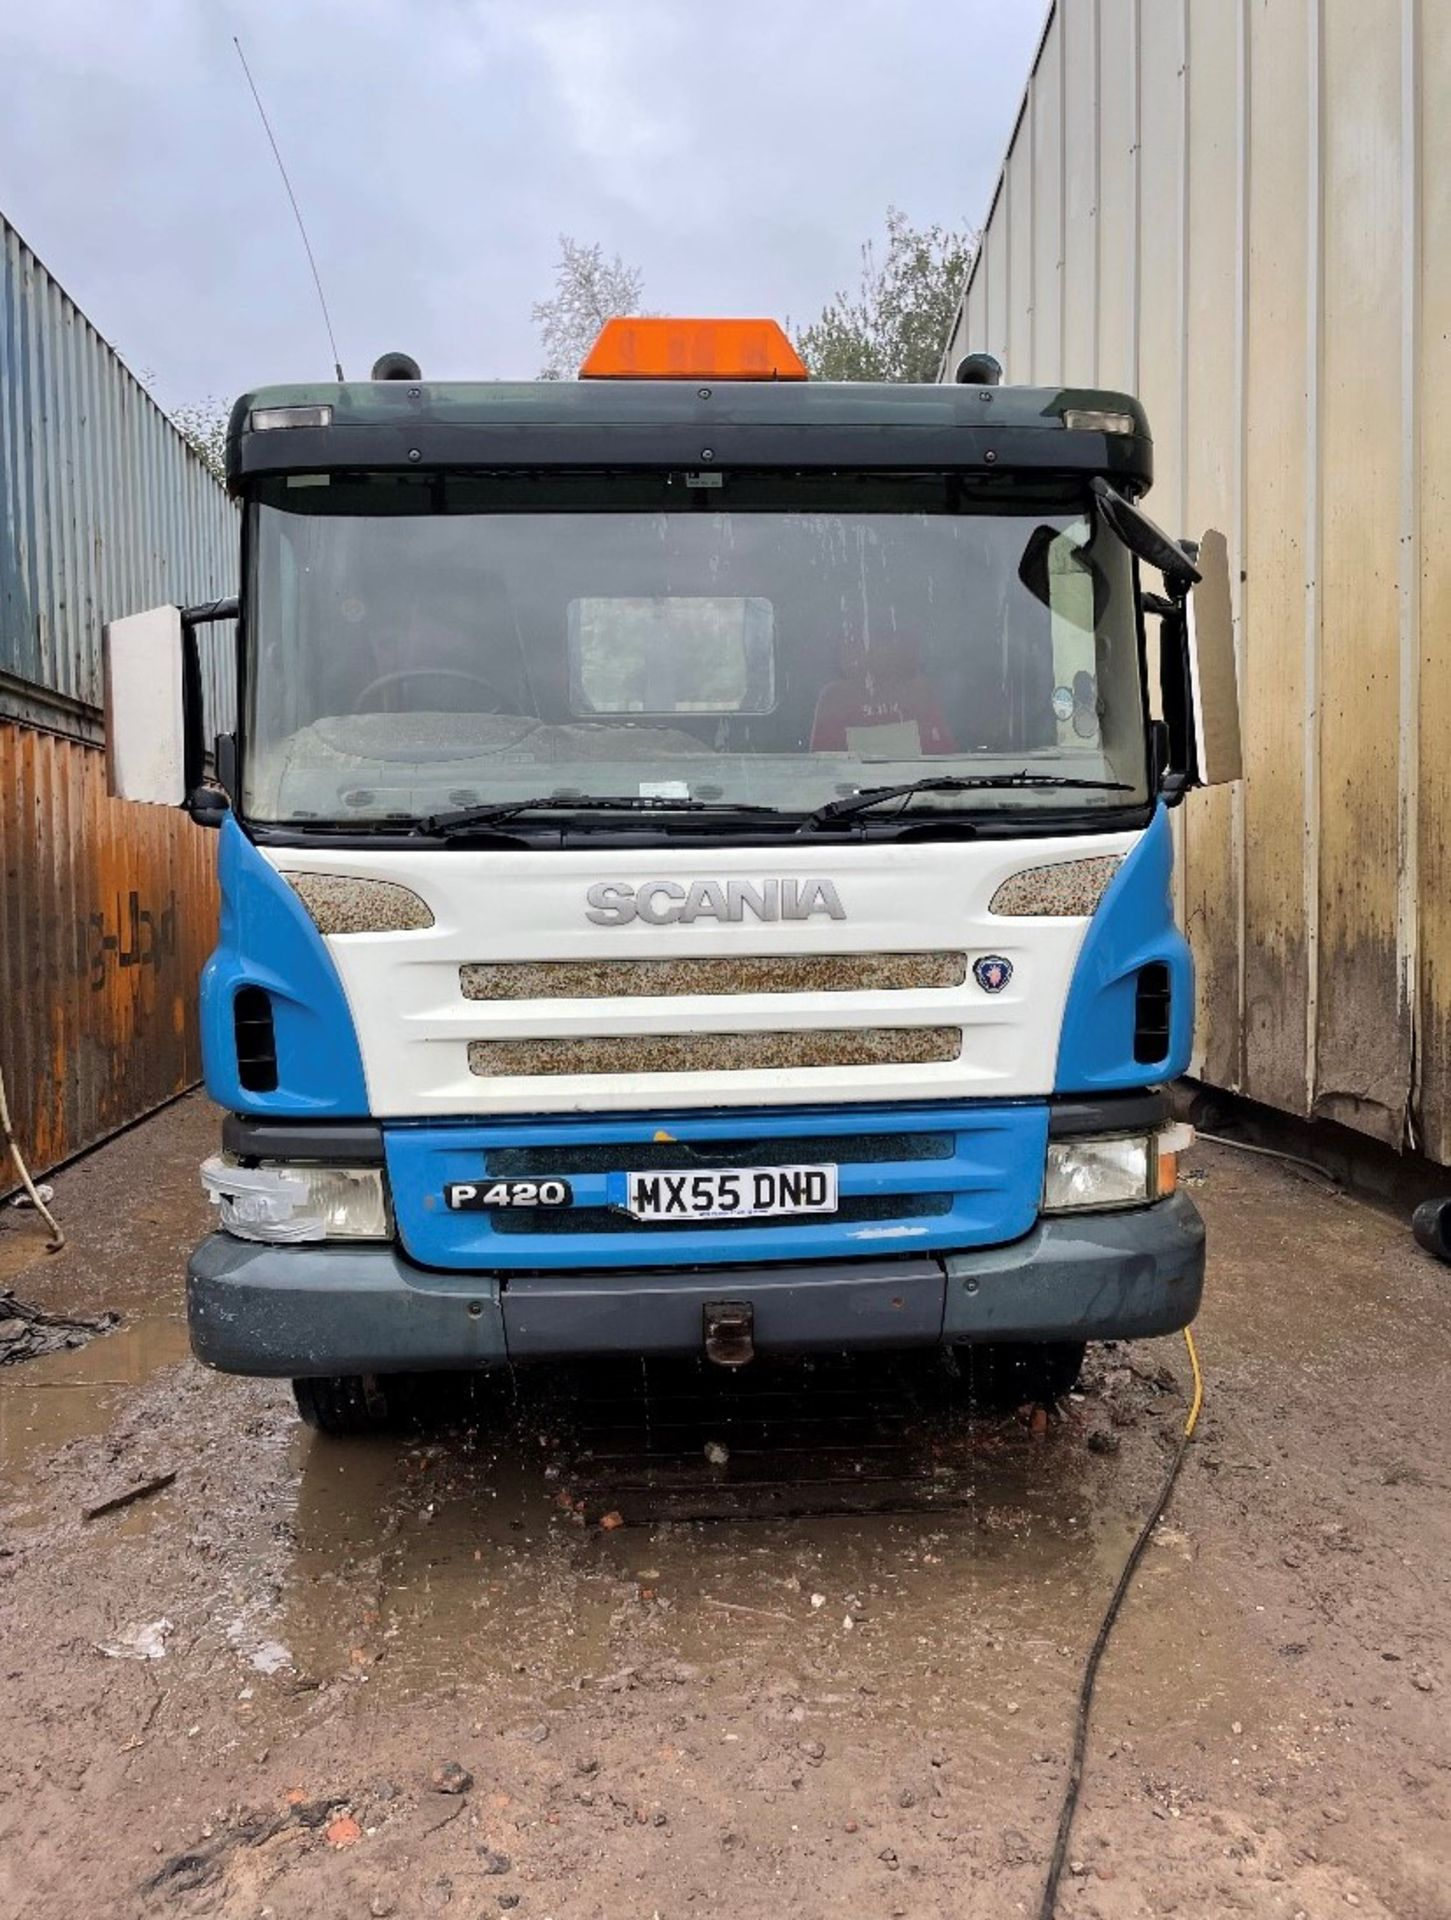 Scania P420 8x4 Hook Lift Truck, registration no. MX55 DND, date first registered 09/2005, indicated - Image 3 of 5